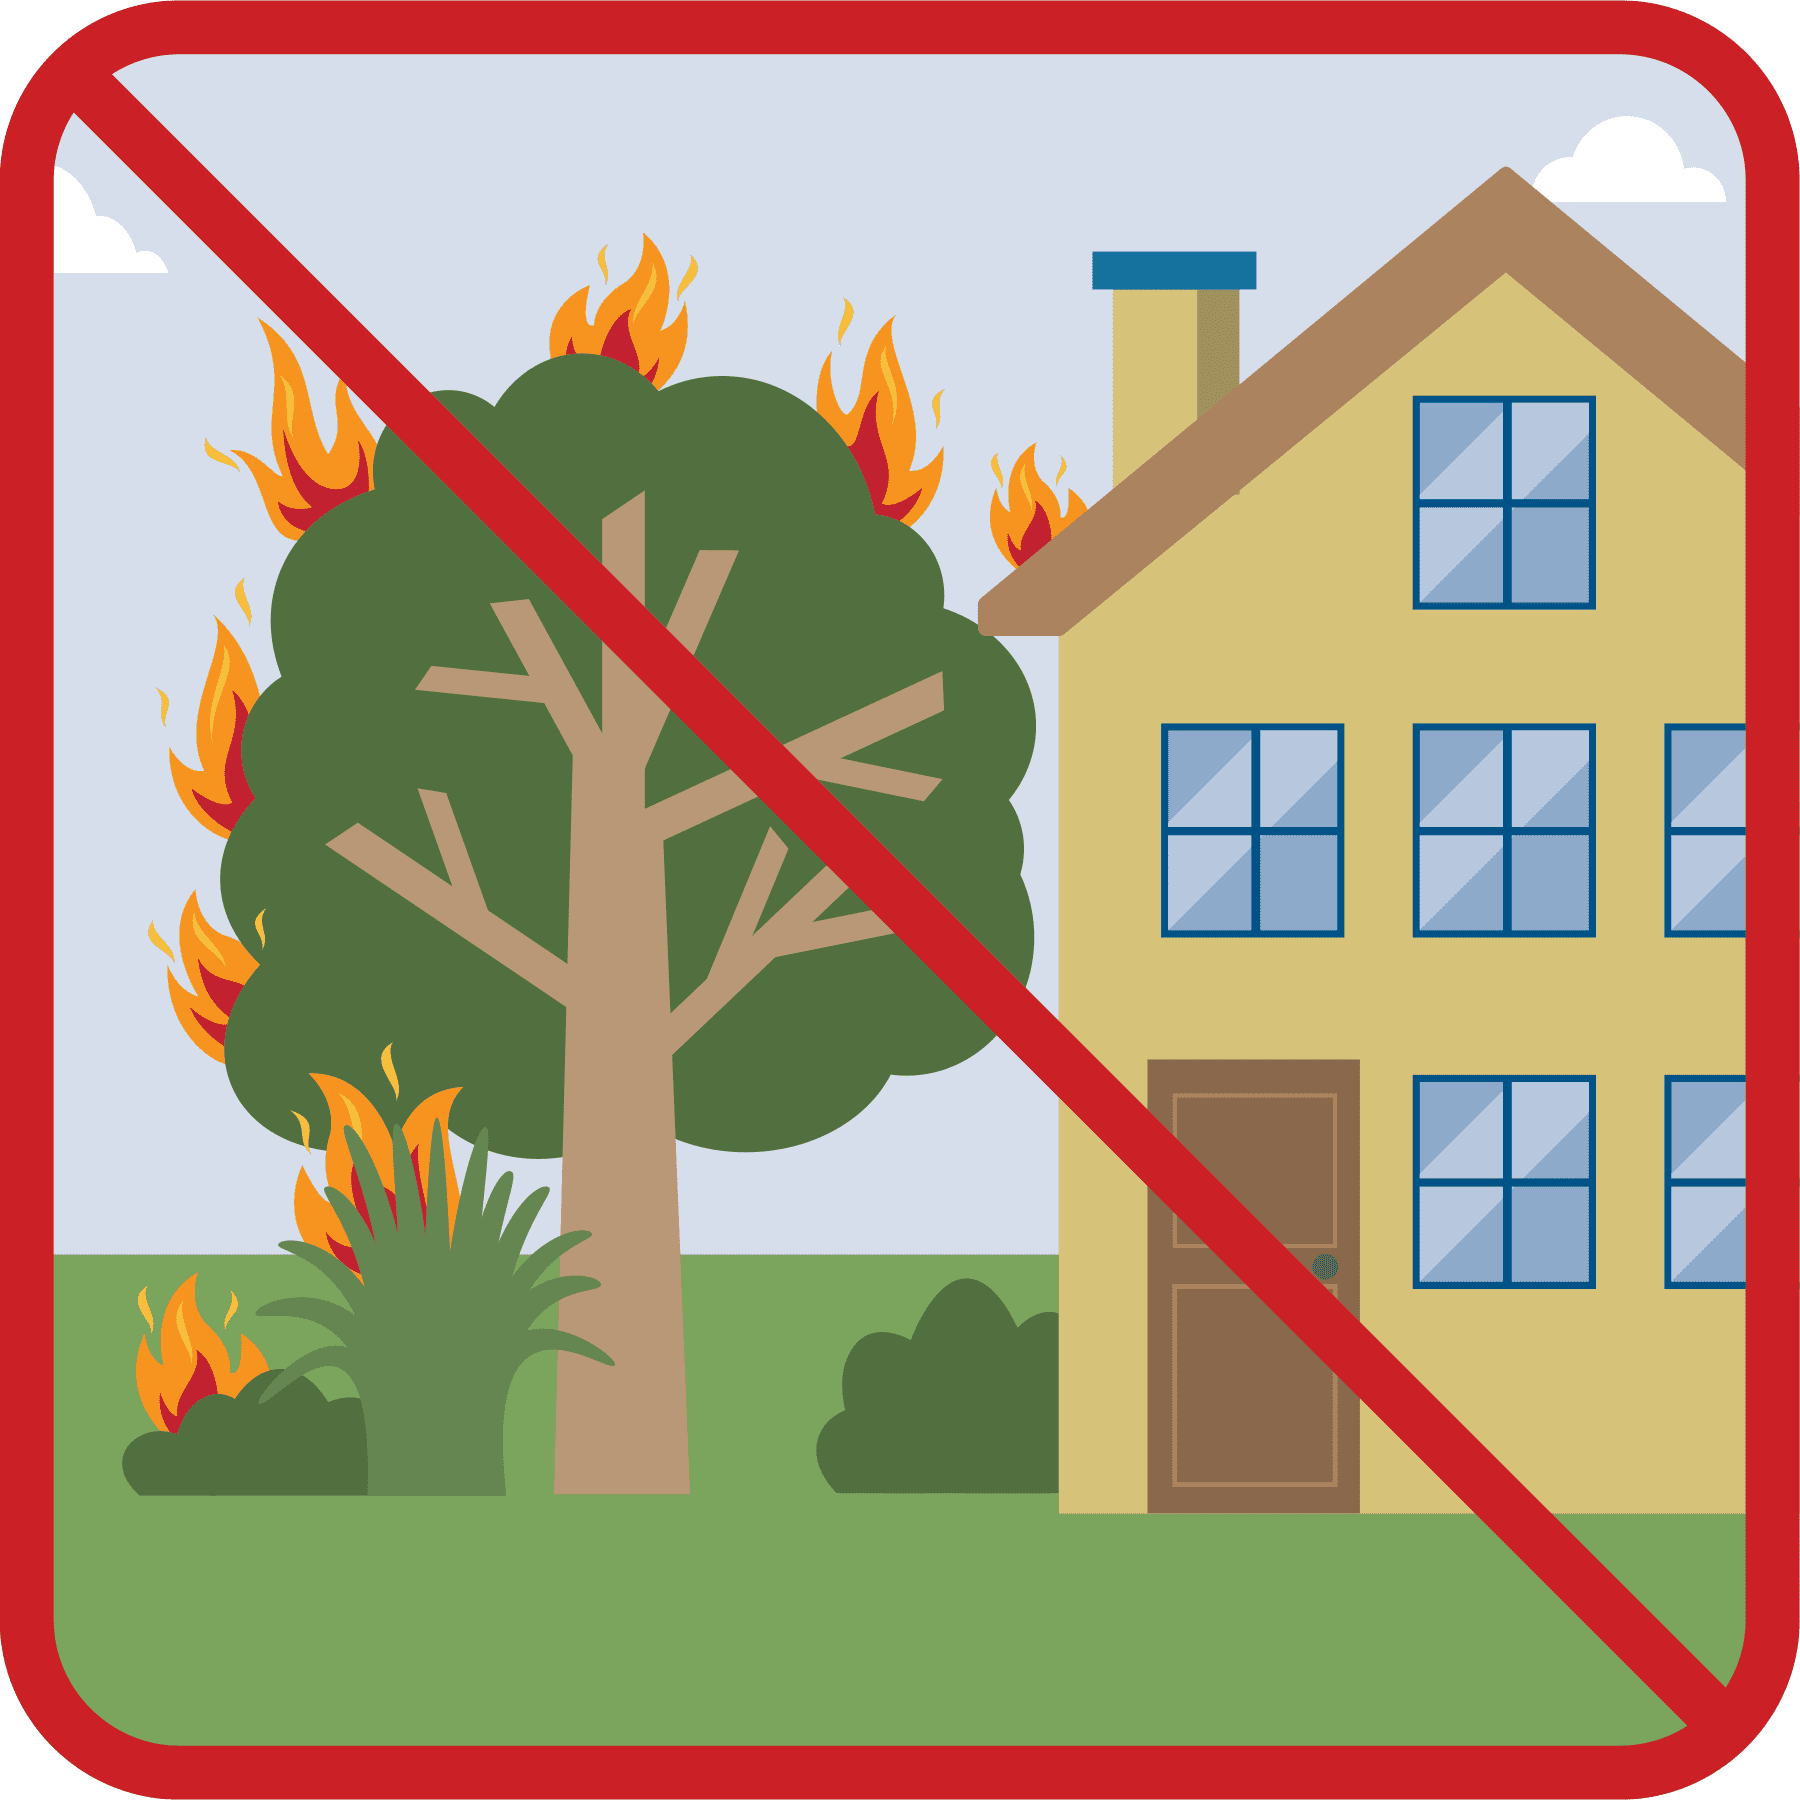 The roof, tree and bushes are on fire. A red diagonal line is displayed across the illustration.